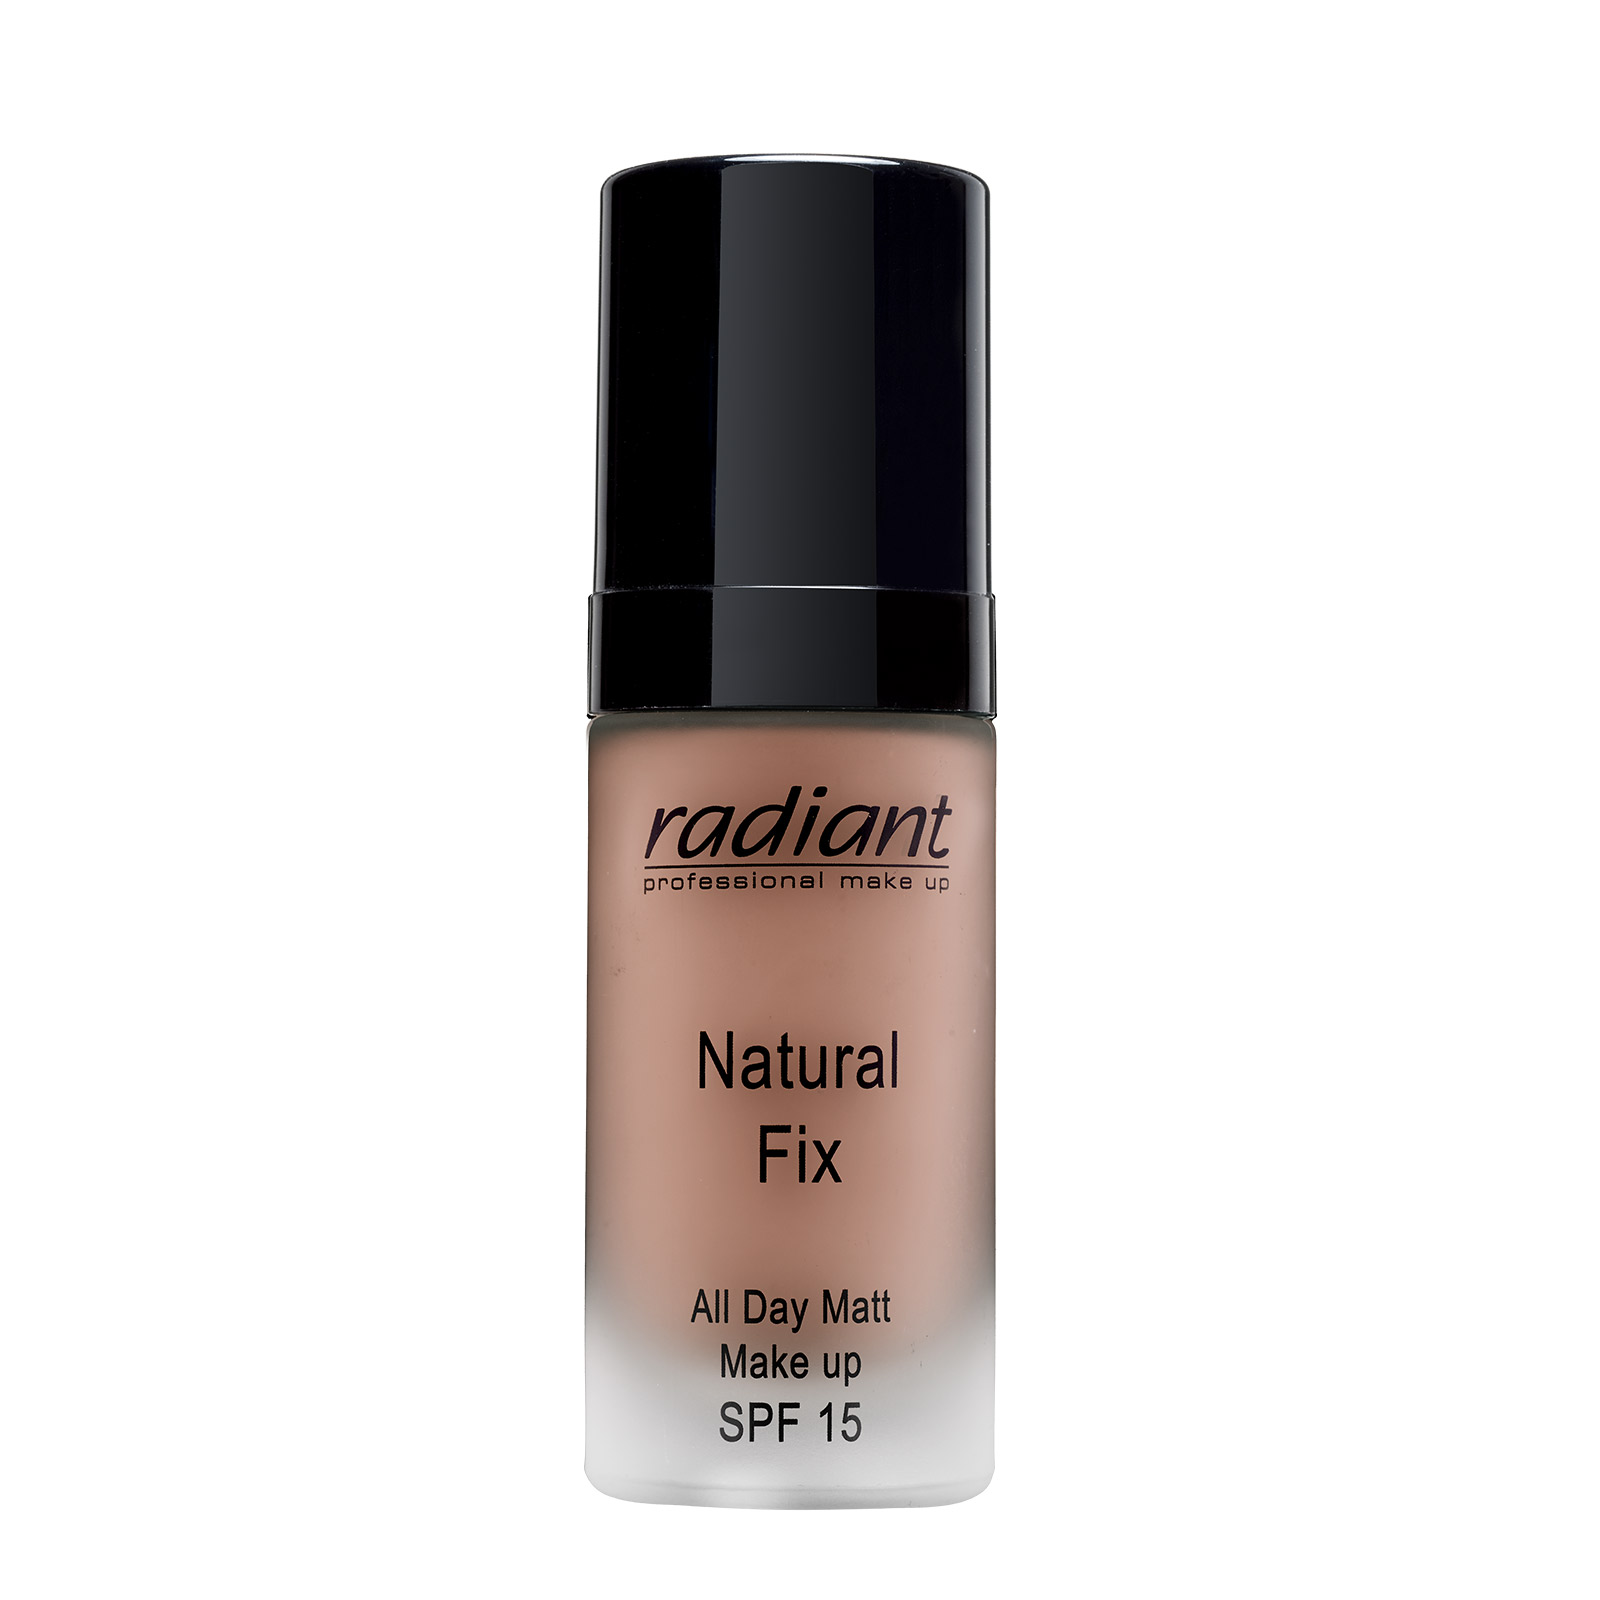 NATURAL FIX ALL DAY MATT MAKE UP SPF 15 (08 Mocca)